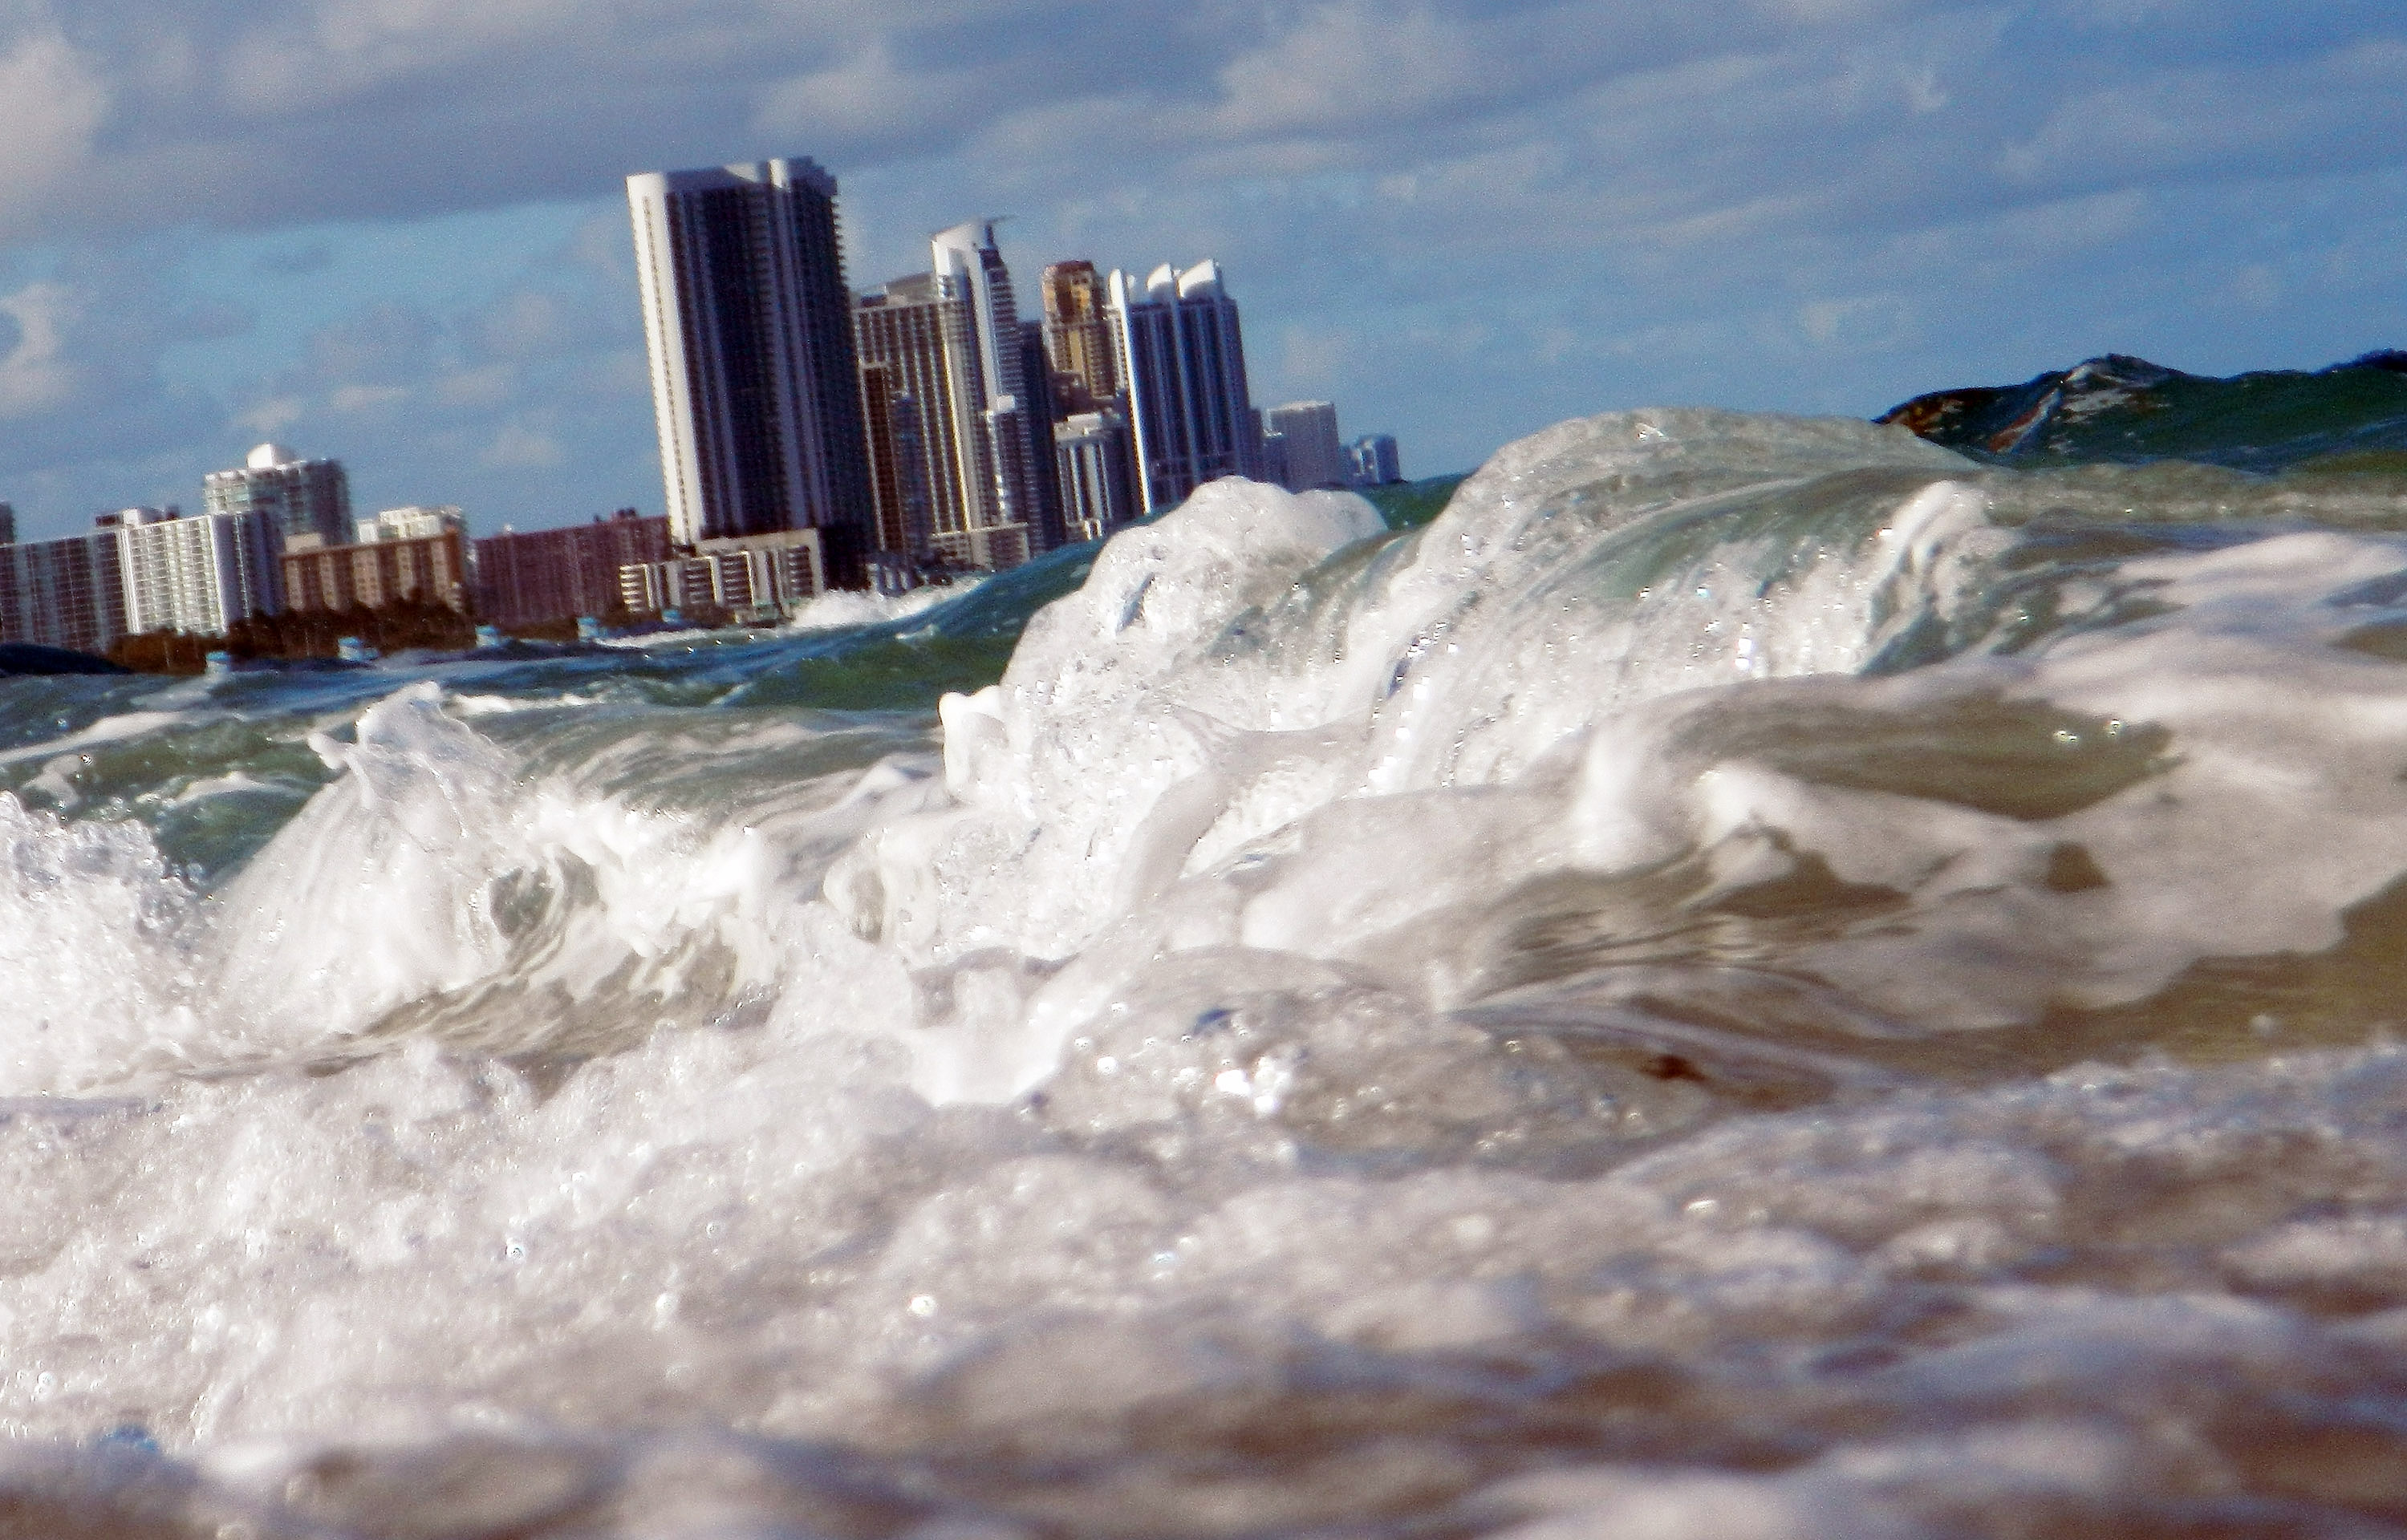 The hardest part of dealing with sea-level rise will be the uncertainty